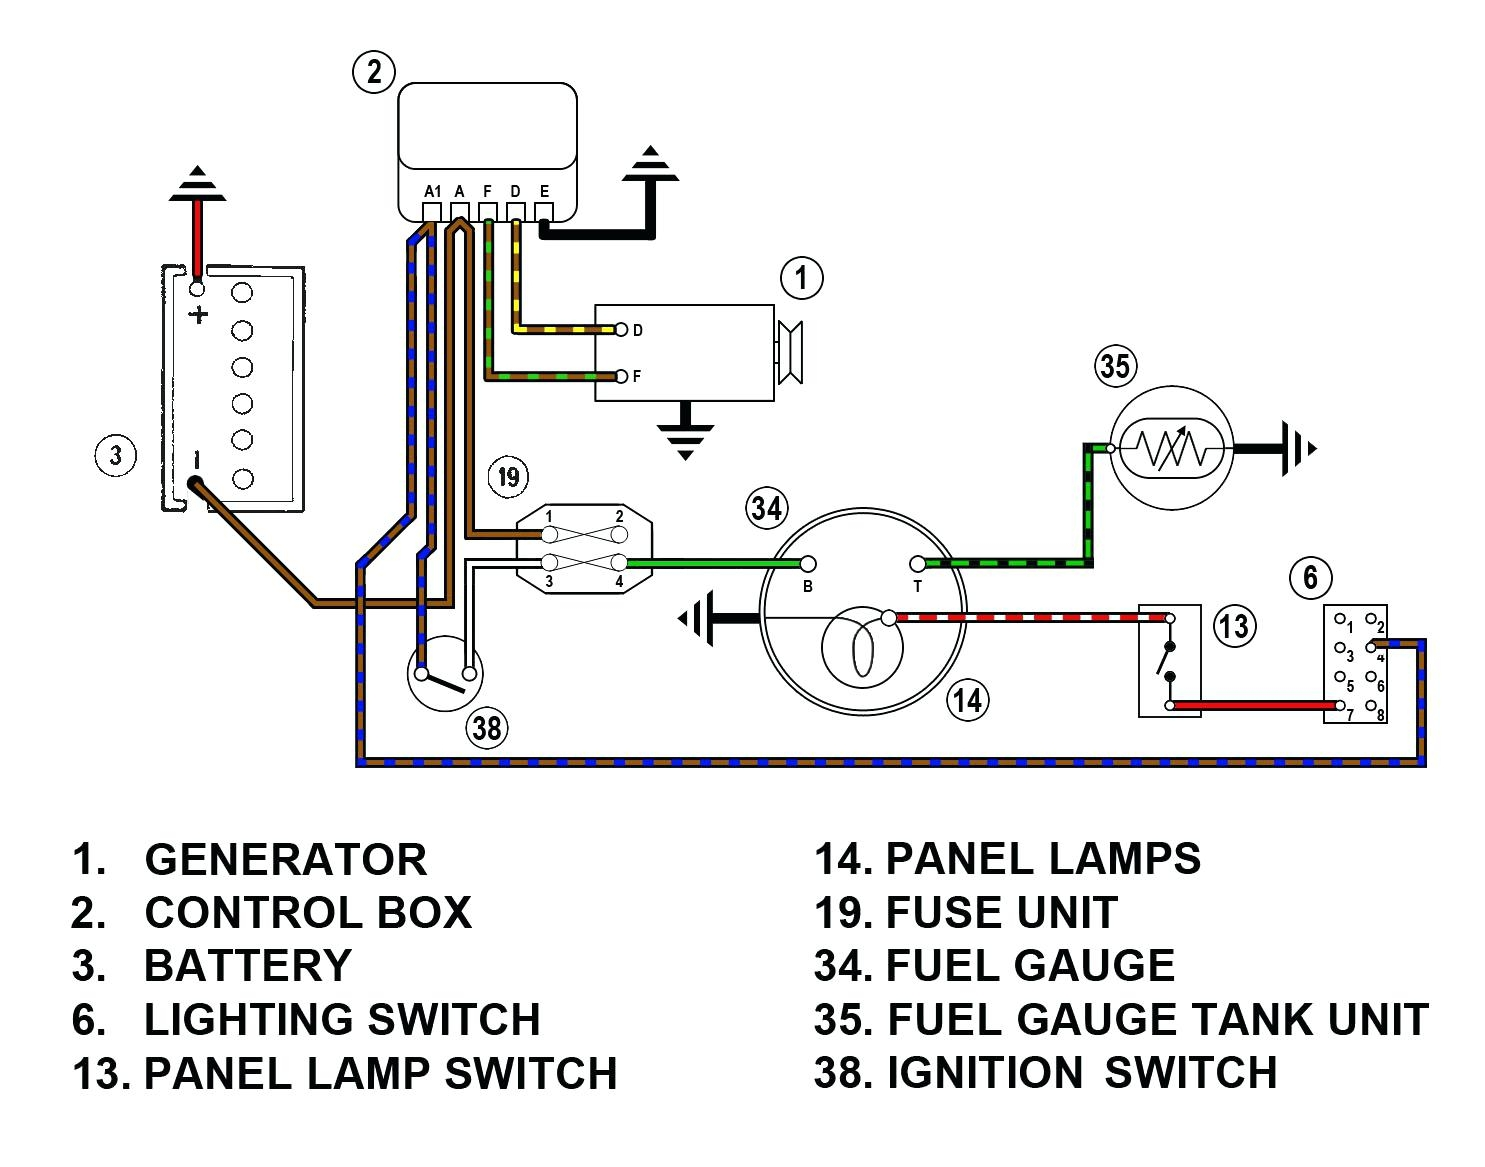 Orenco Systems Control Panel Wiring Diagram